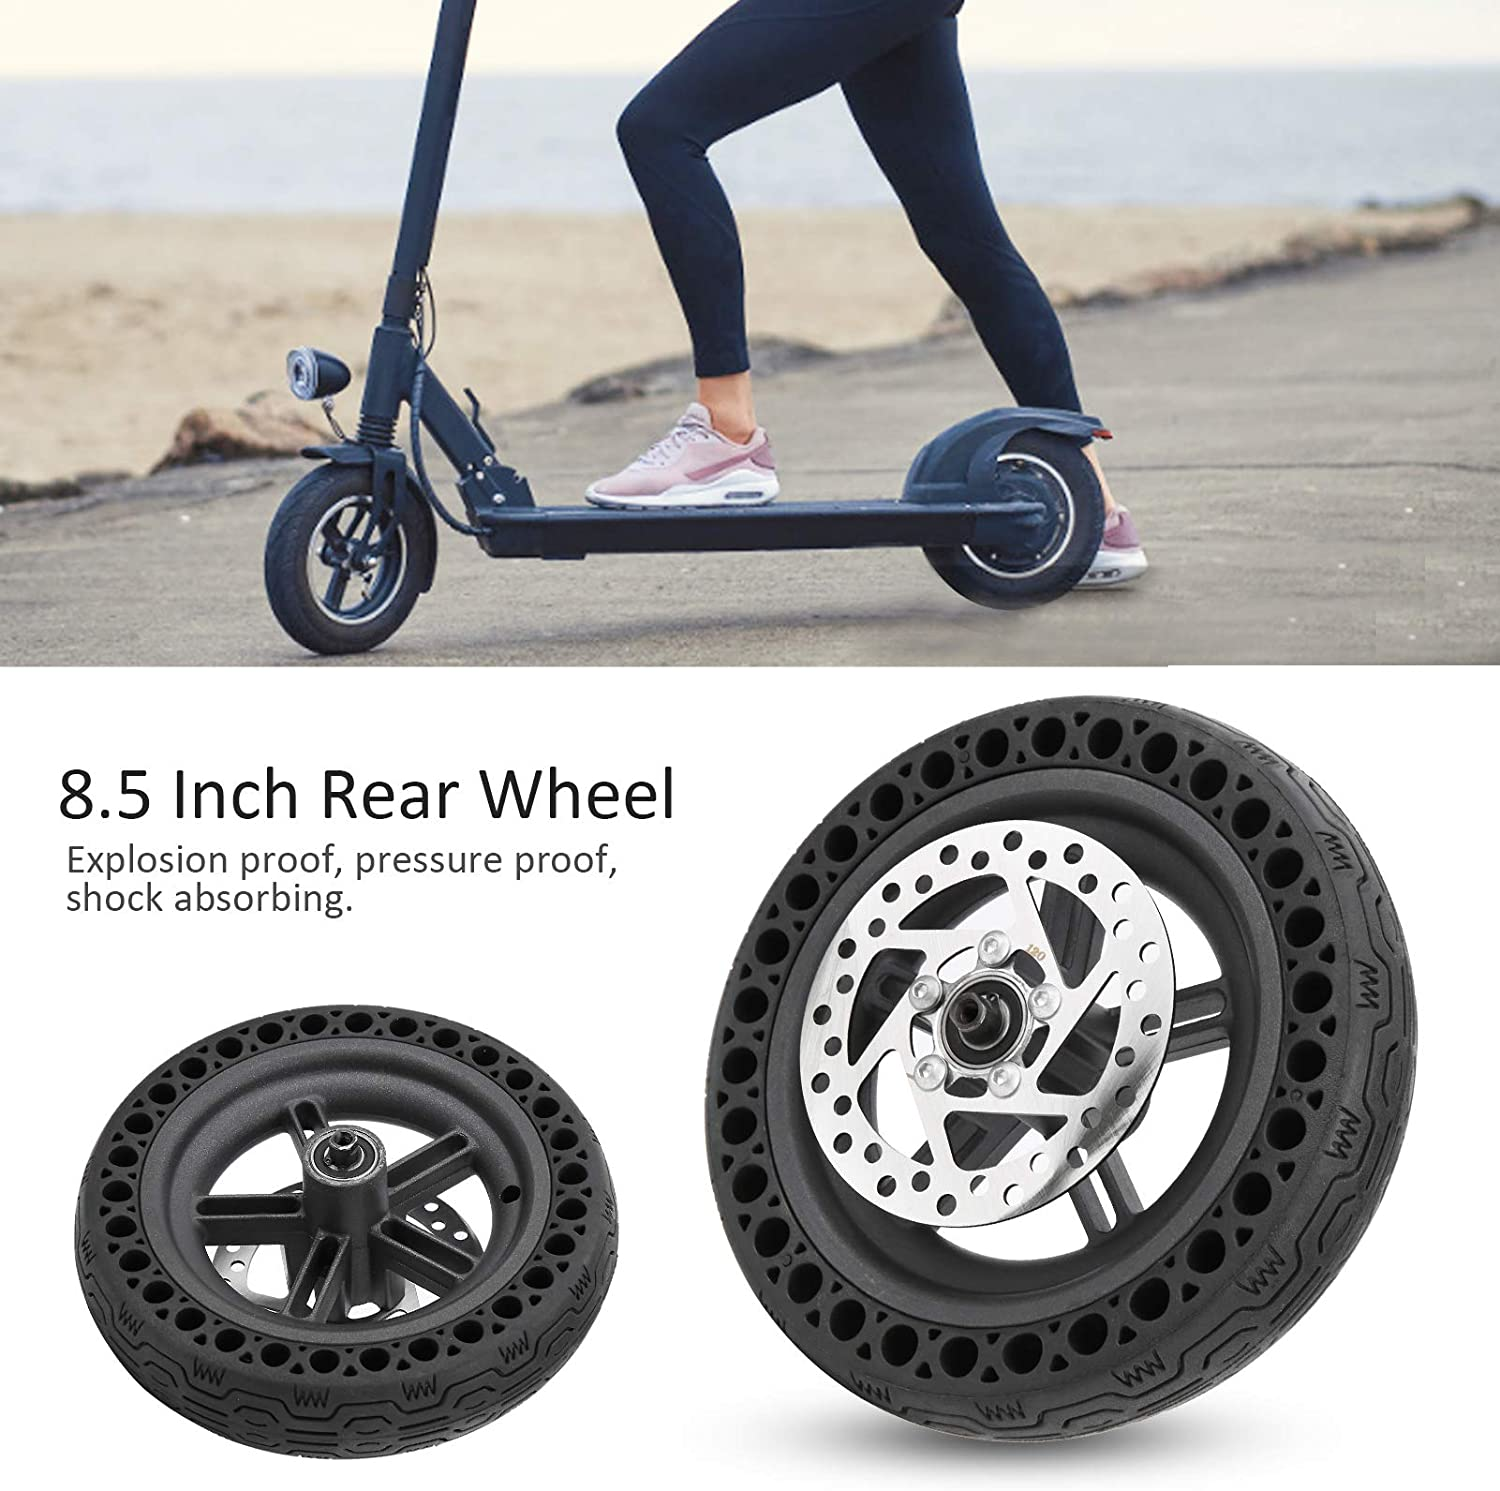 8.5in 120mm Electric Scooter Disc Brake Disc Rear Wheel with Back Wheel Hub VGEBY Electric Scooter Rear Tire